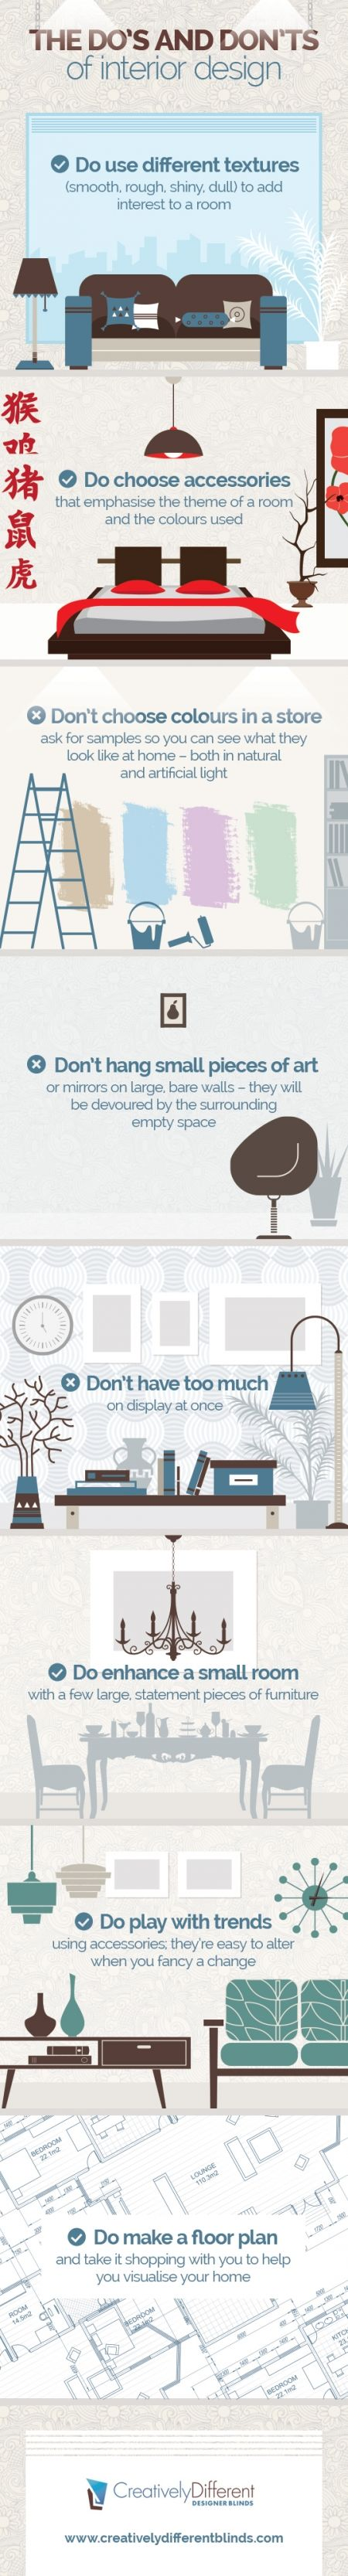 Take these tips and experiment with the latest trends (or even create your own), interesting textures and creative colour combinations until you find the style that suits you best. The secret to successful interior design is having fun with your creations, and embracing the things that make you and your home unique.